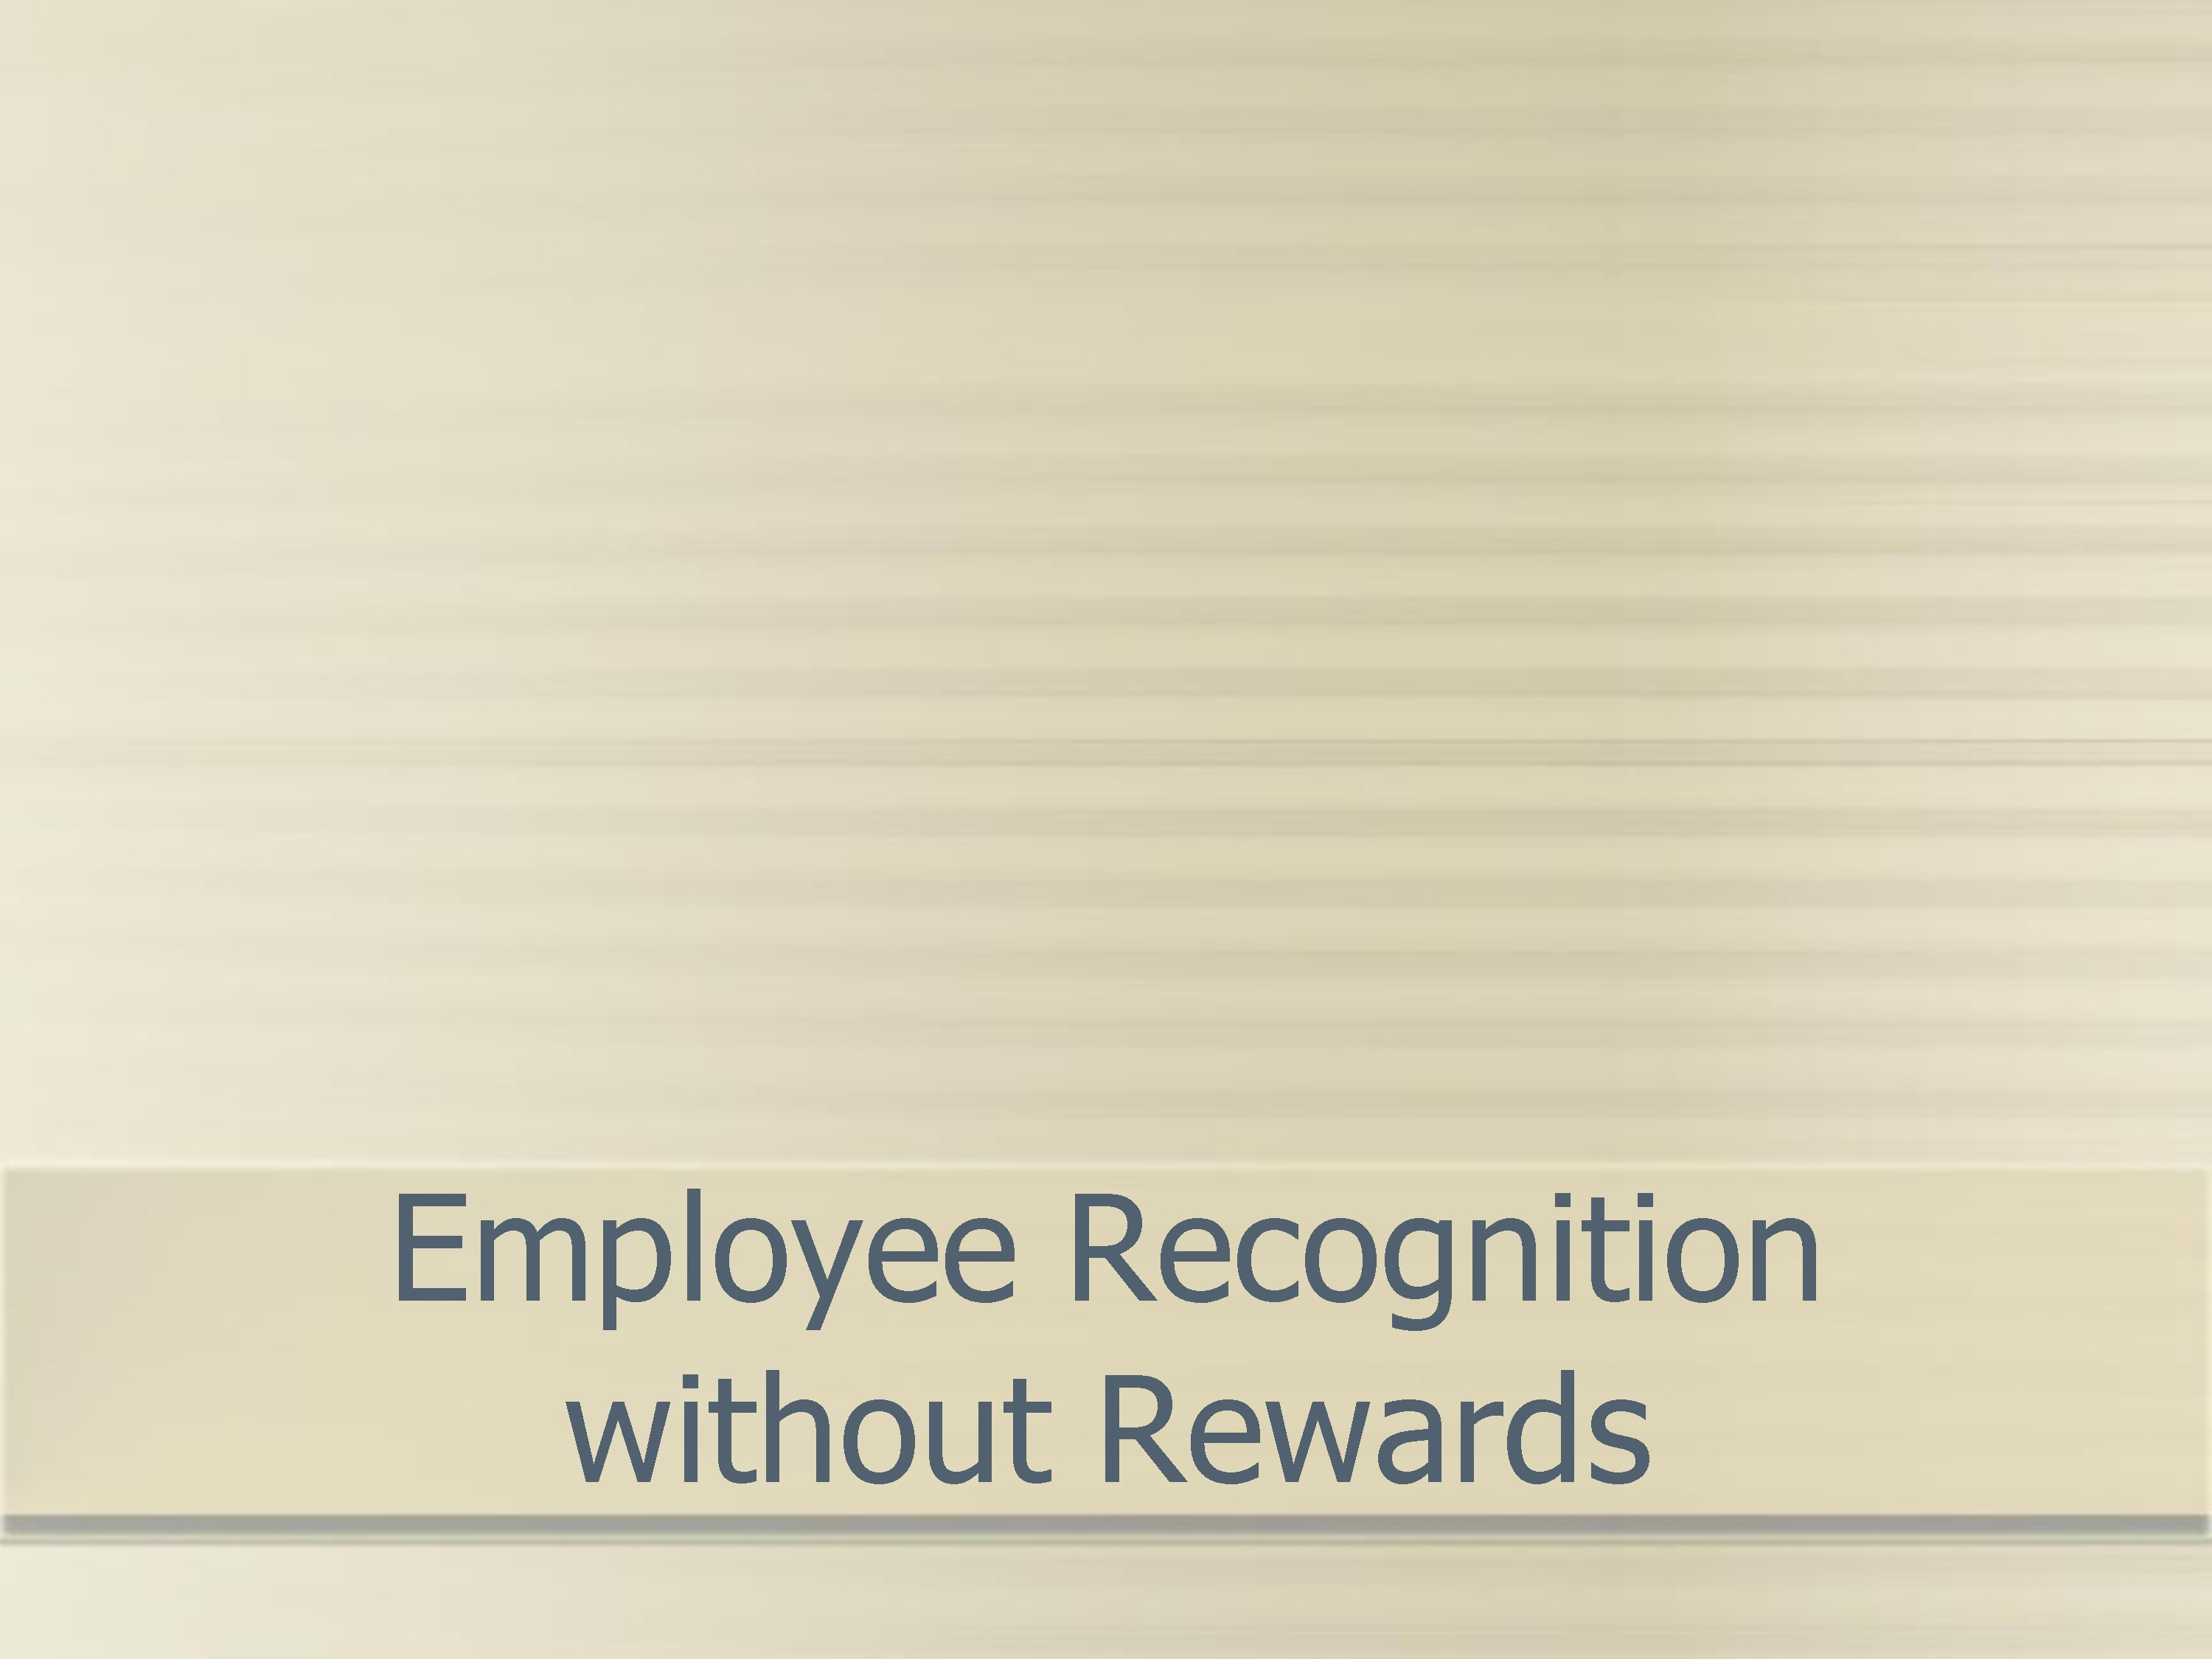 Employee Recognition without Rewards